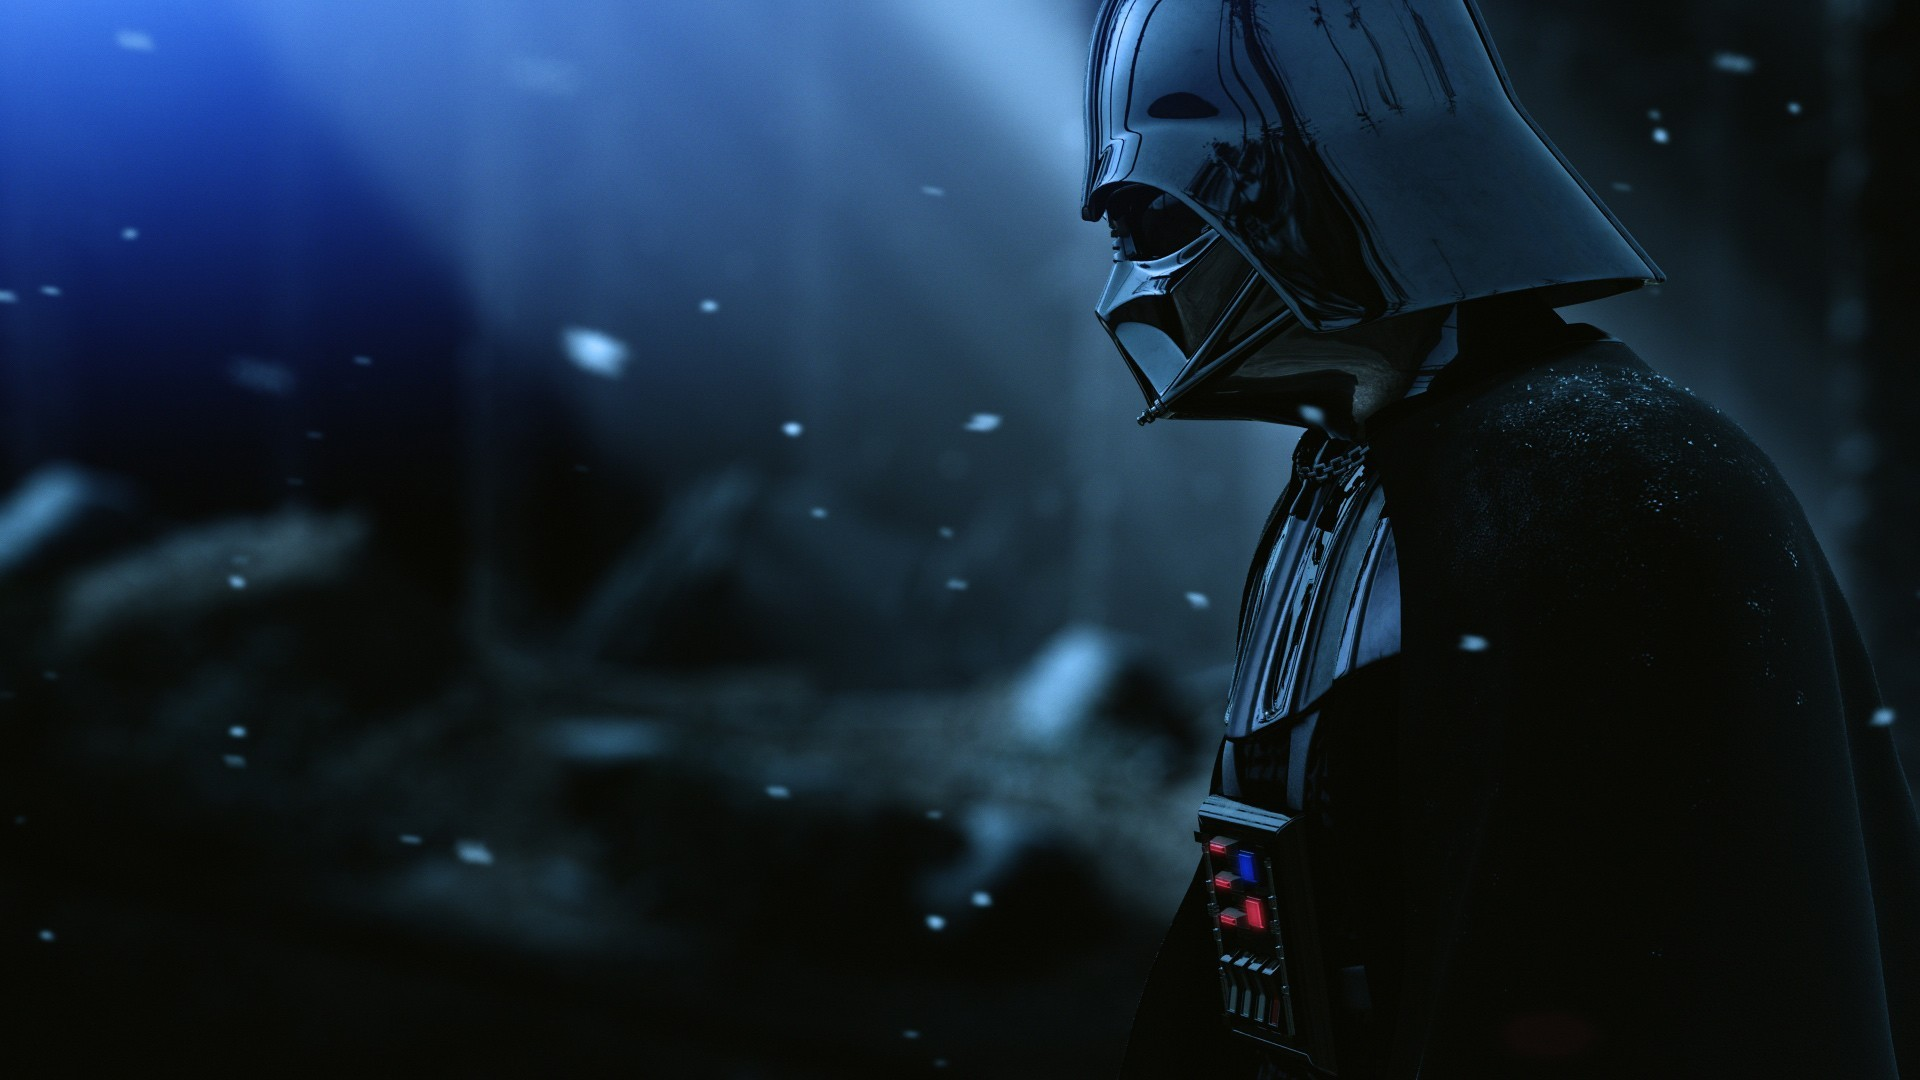 HD Star Wars Wallpapers 1080p - WallpaperSafari